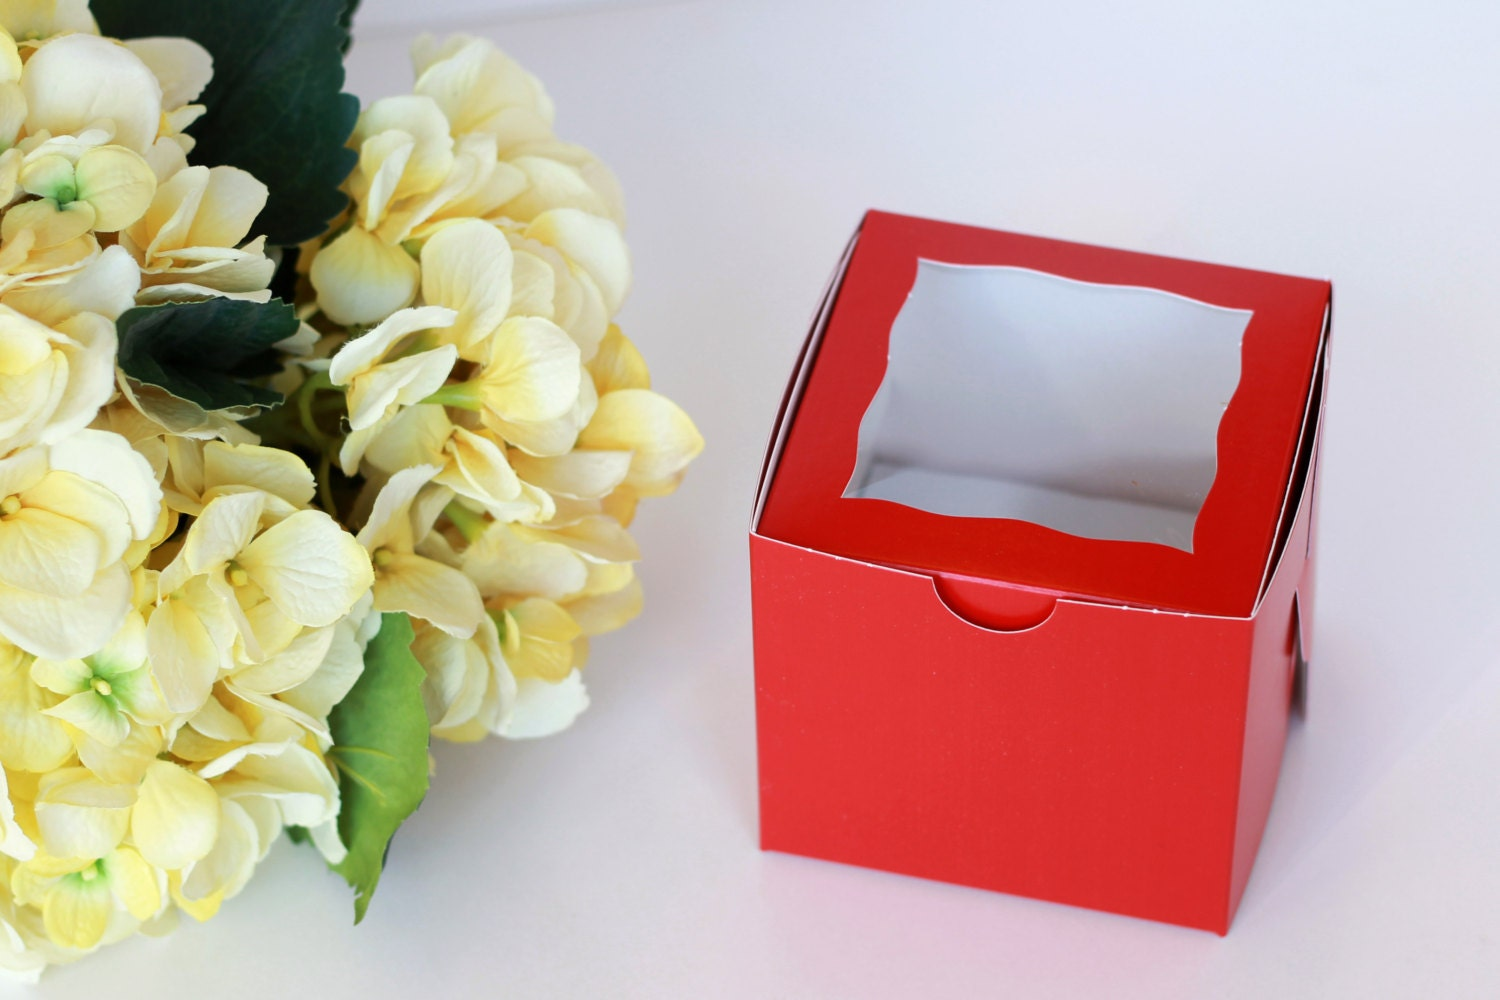 Gold Favor Boxes 4x4x4 : Red cupcake boxes with window x from